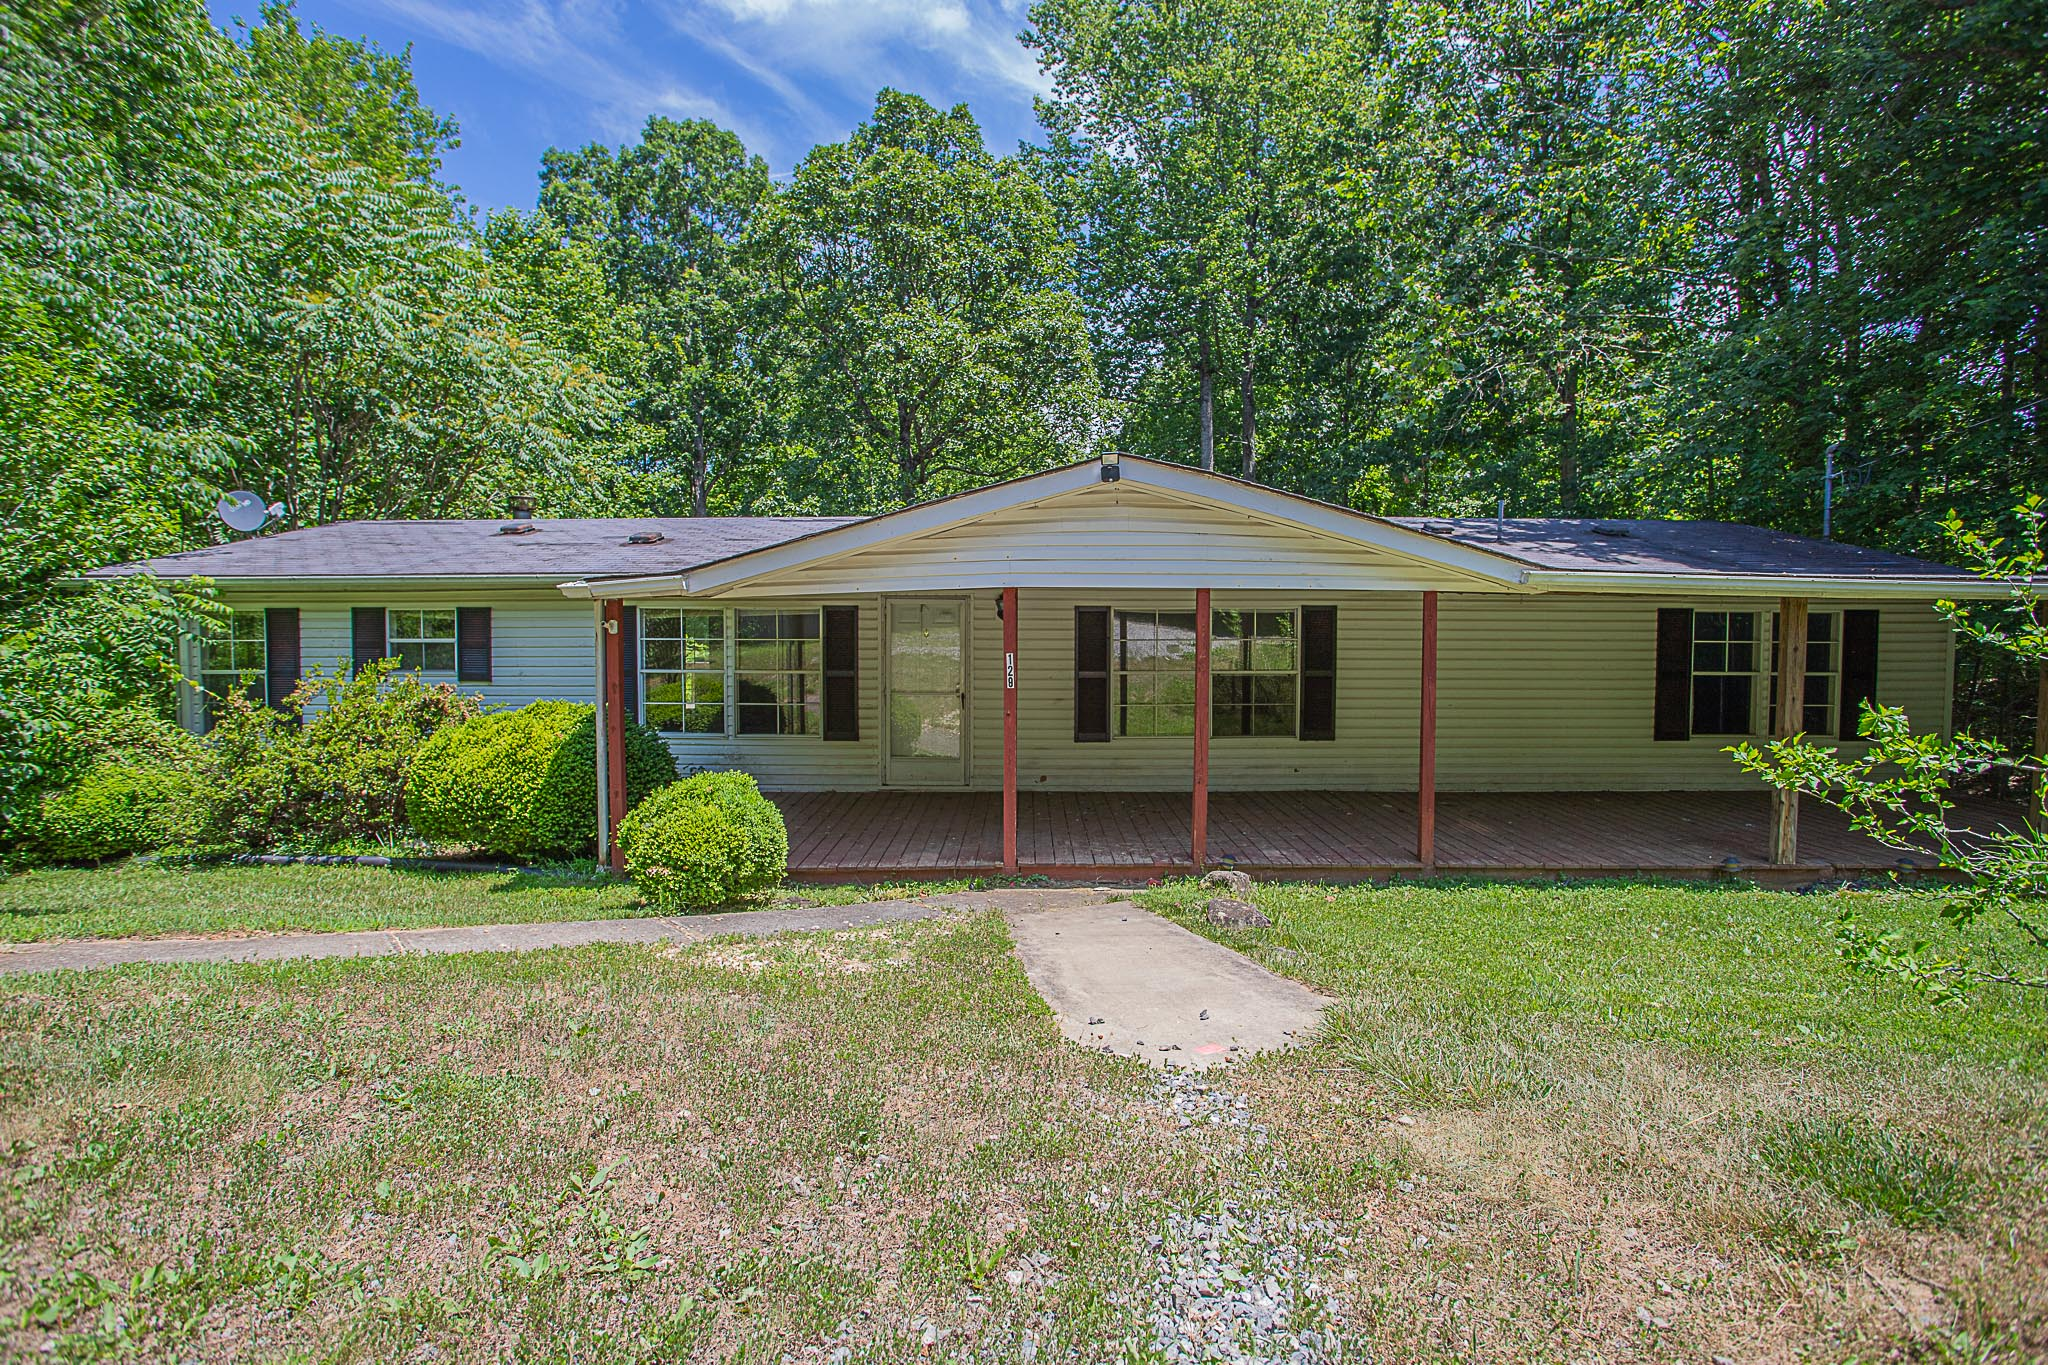 Home for Sale in Amherst County,  128 Tiffany Lane